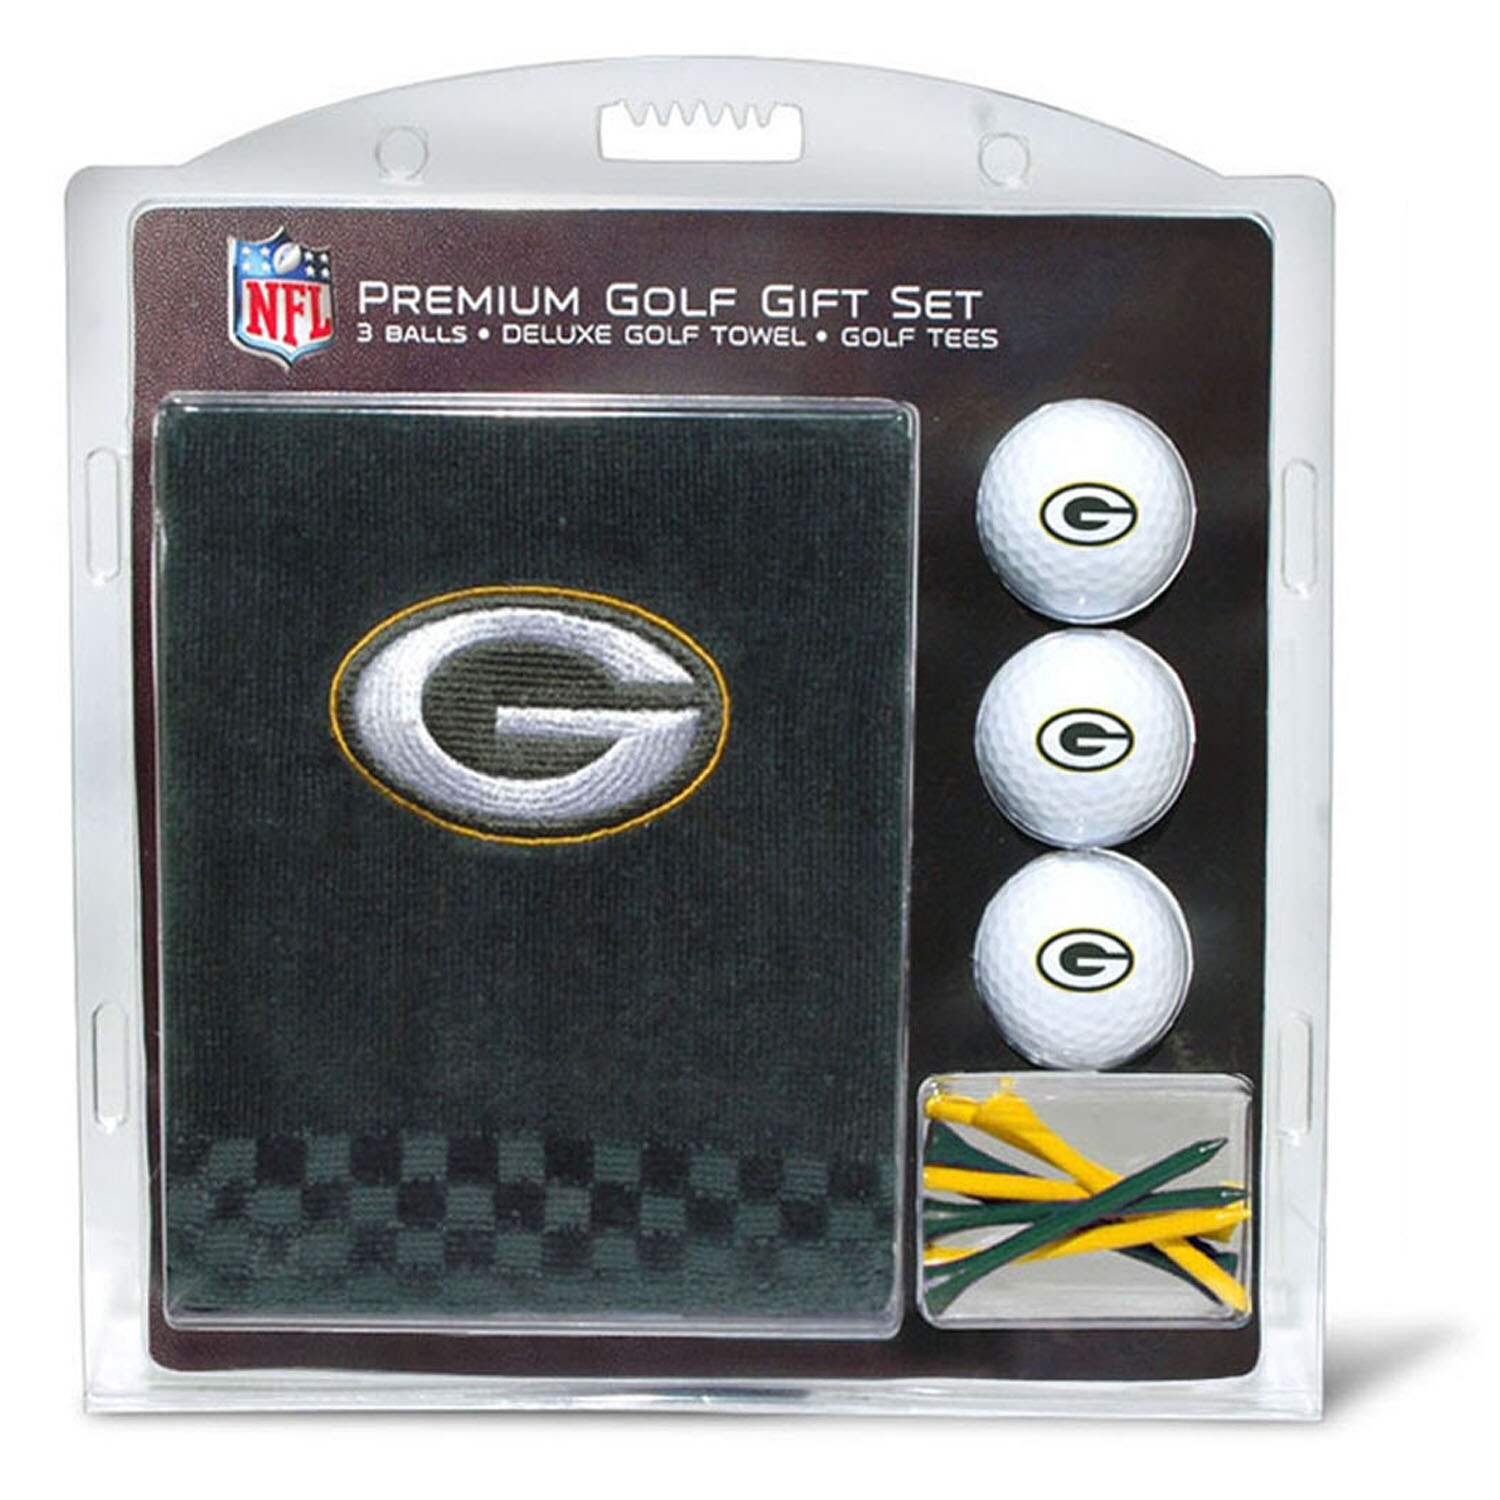 Green Bay Packers Embroidered Golf Gift Set